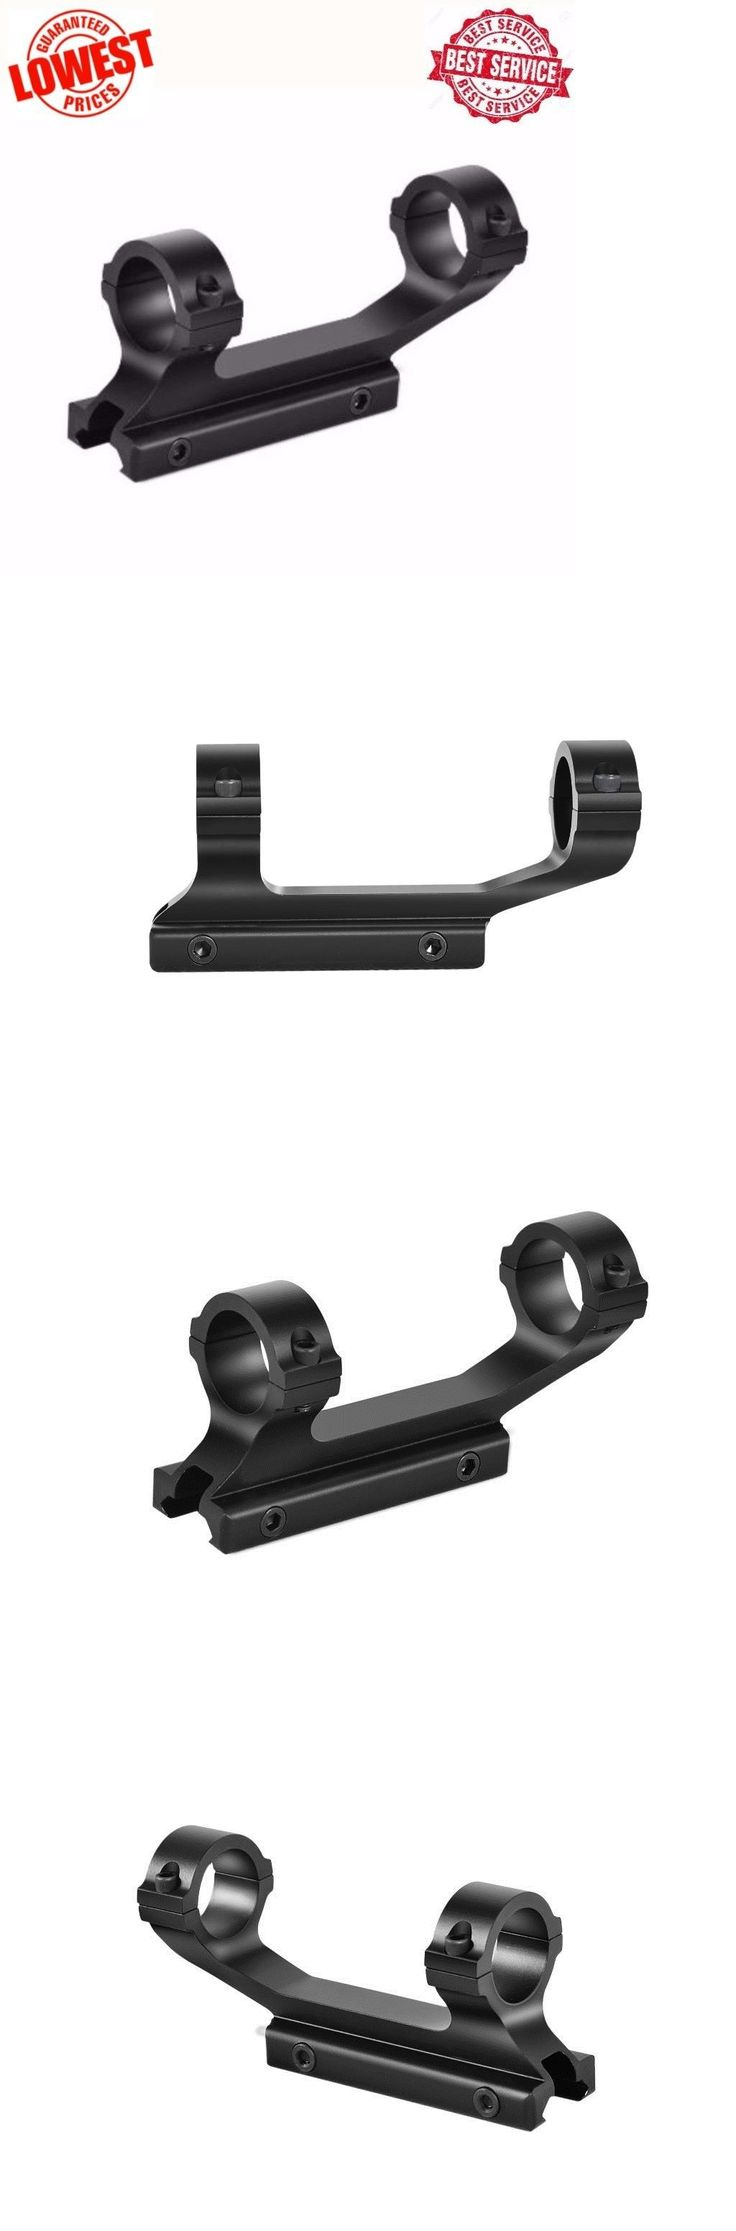 Scope Mounts and Accessories 52510: Tactical Mount M-223 Riflescope Scope Picatinny Rails 1 Inch For Tube Nikon New -> BUY IT NOW ONLY: $38.4 on eBay!